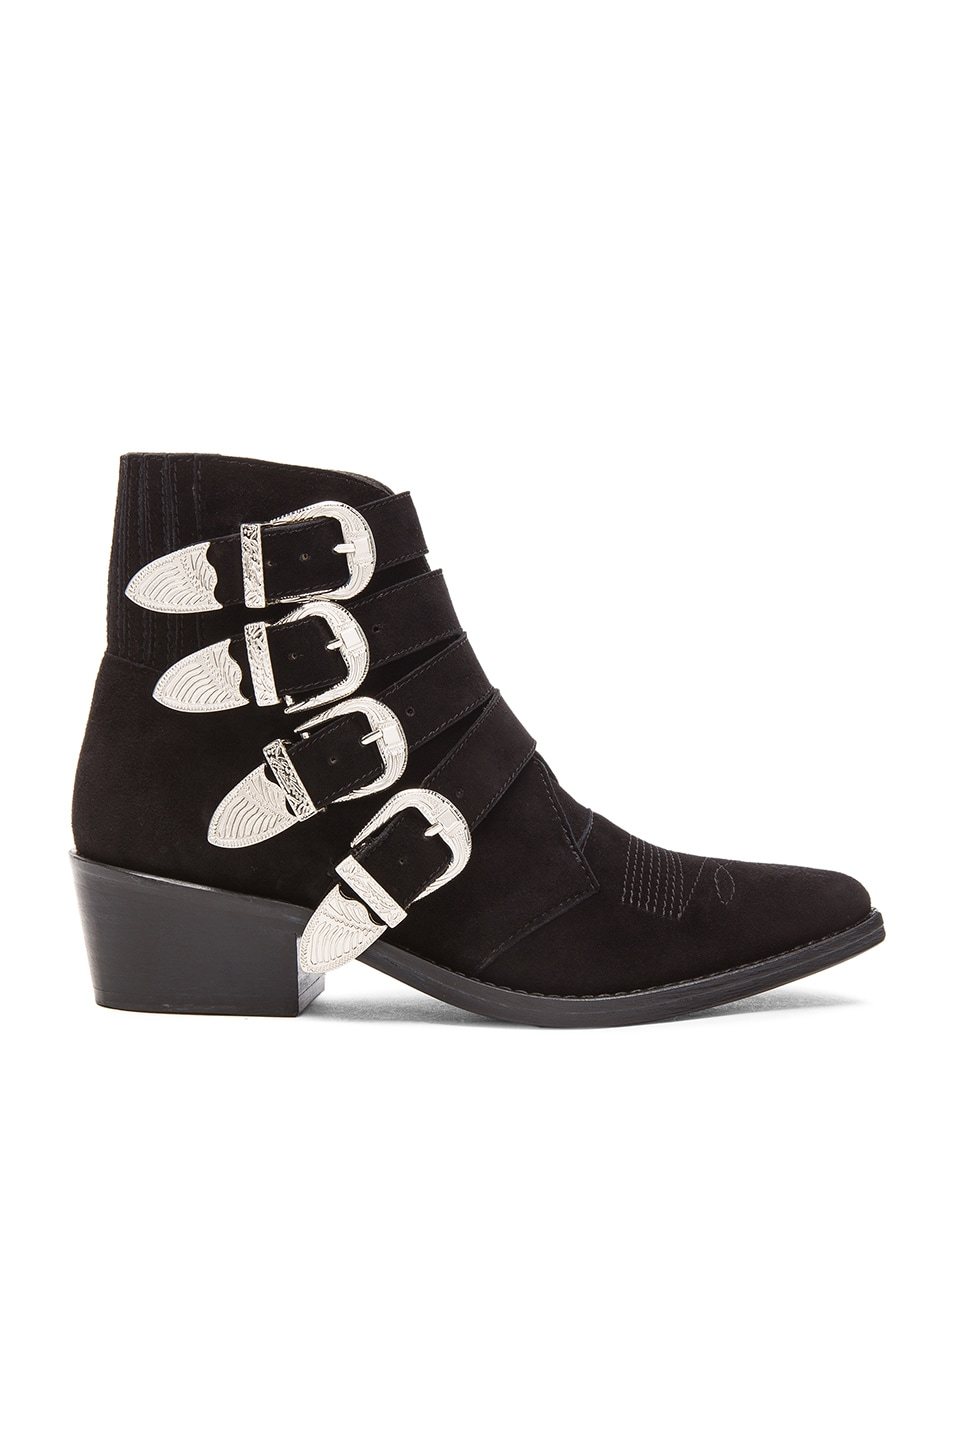 Image 1 of TOGA PULLA Suede Buckled Booties in Black